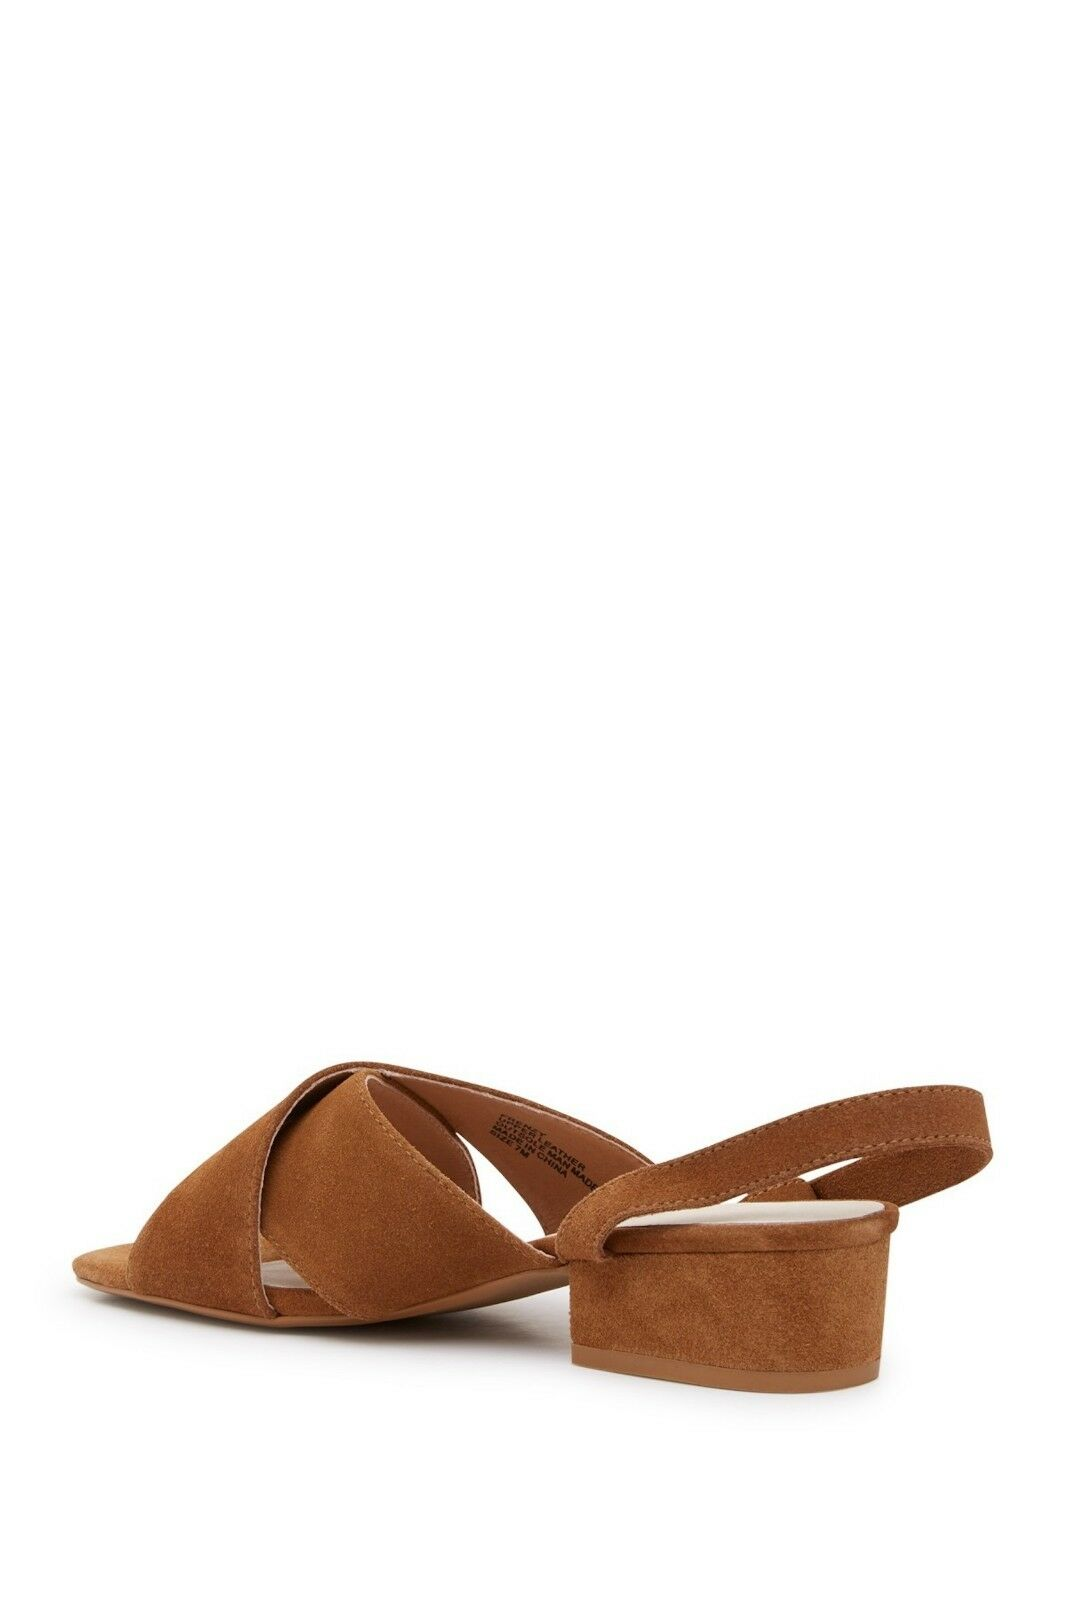 MATISSE Frenzy saddle Brown Suede Ankle Wrap Sandals Sz 8 8 8  150 NIB 265cce